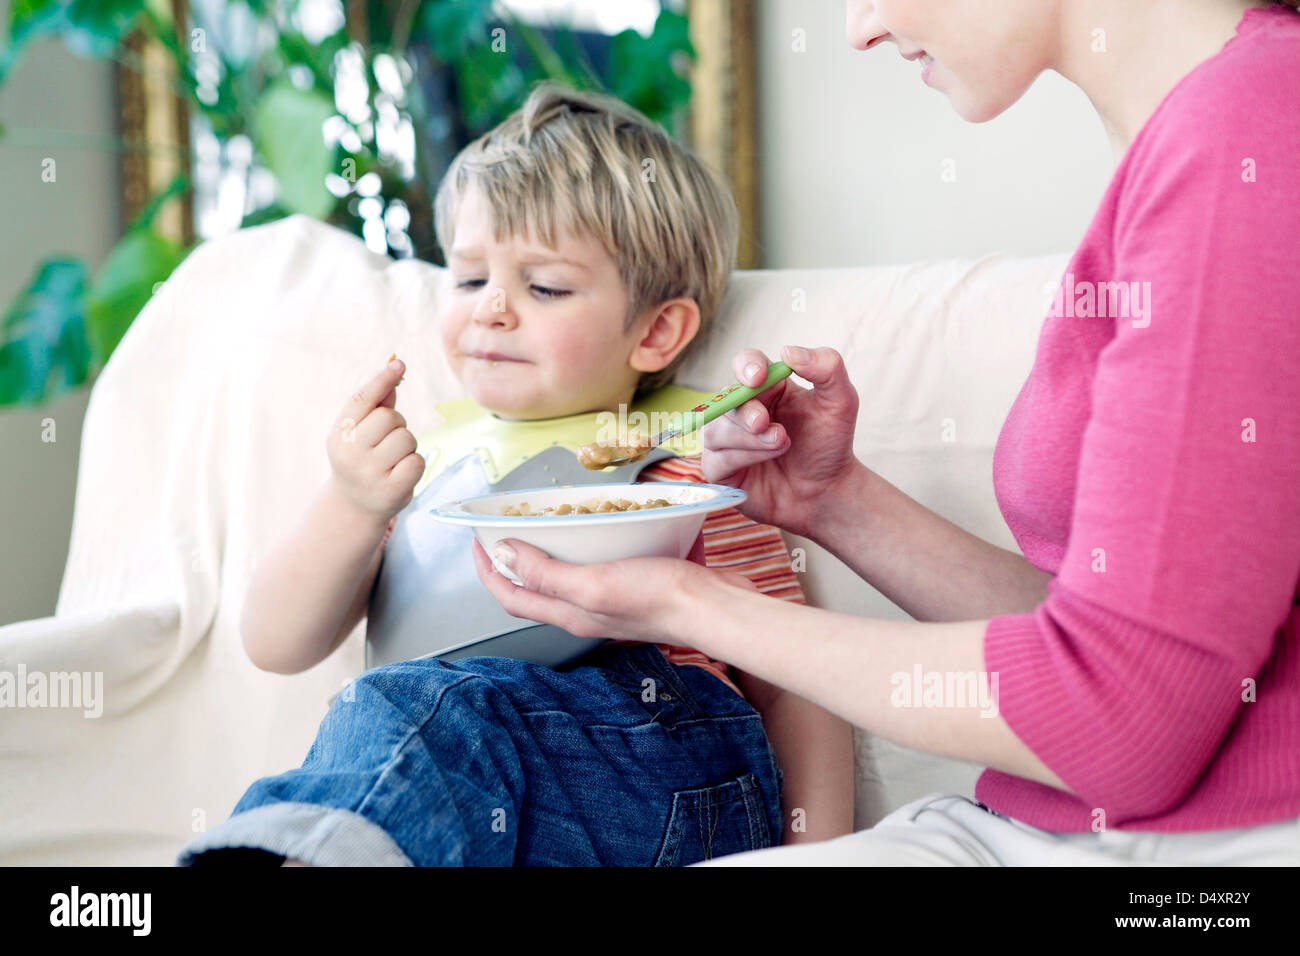 CHILD EATING A MEAL Stock Photo